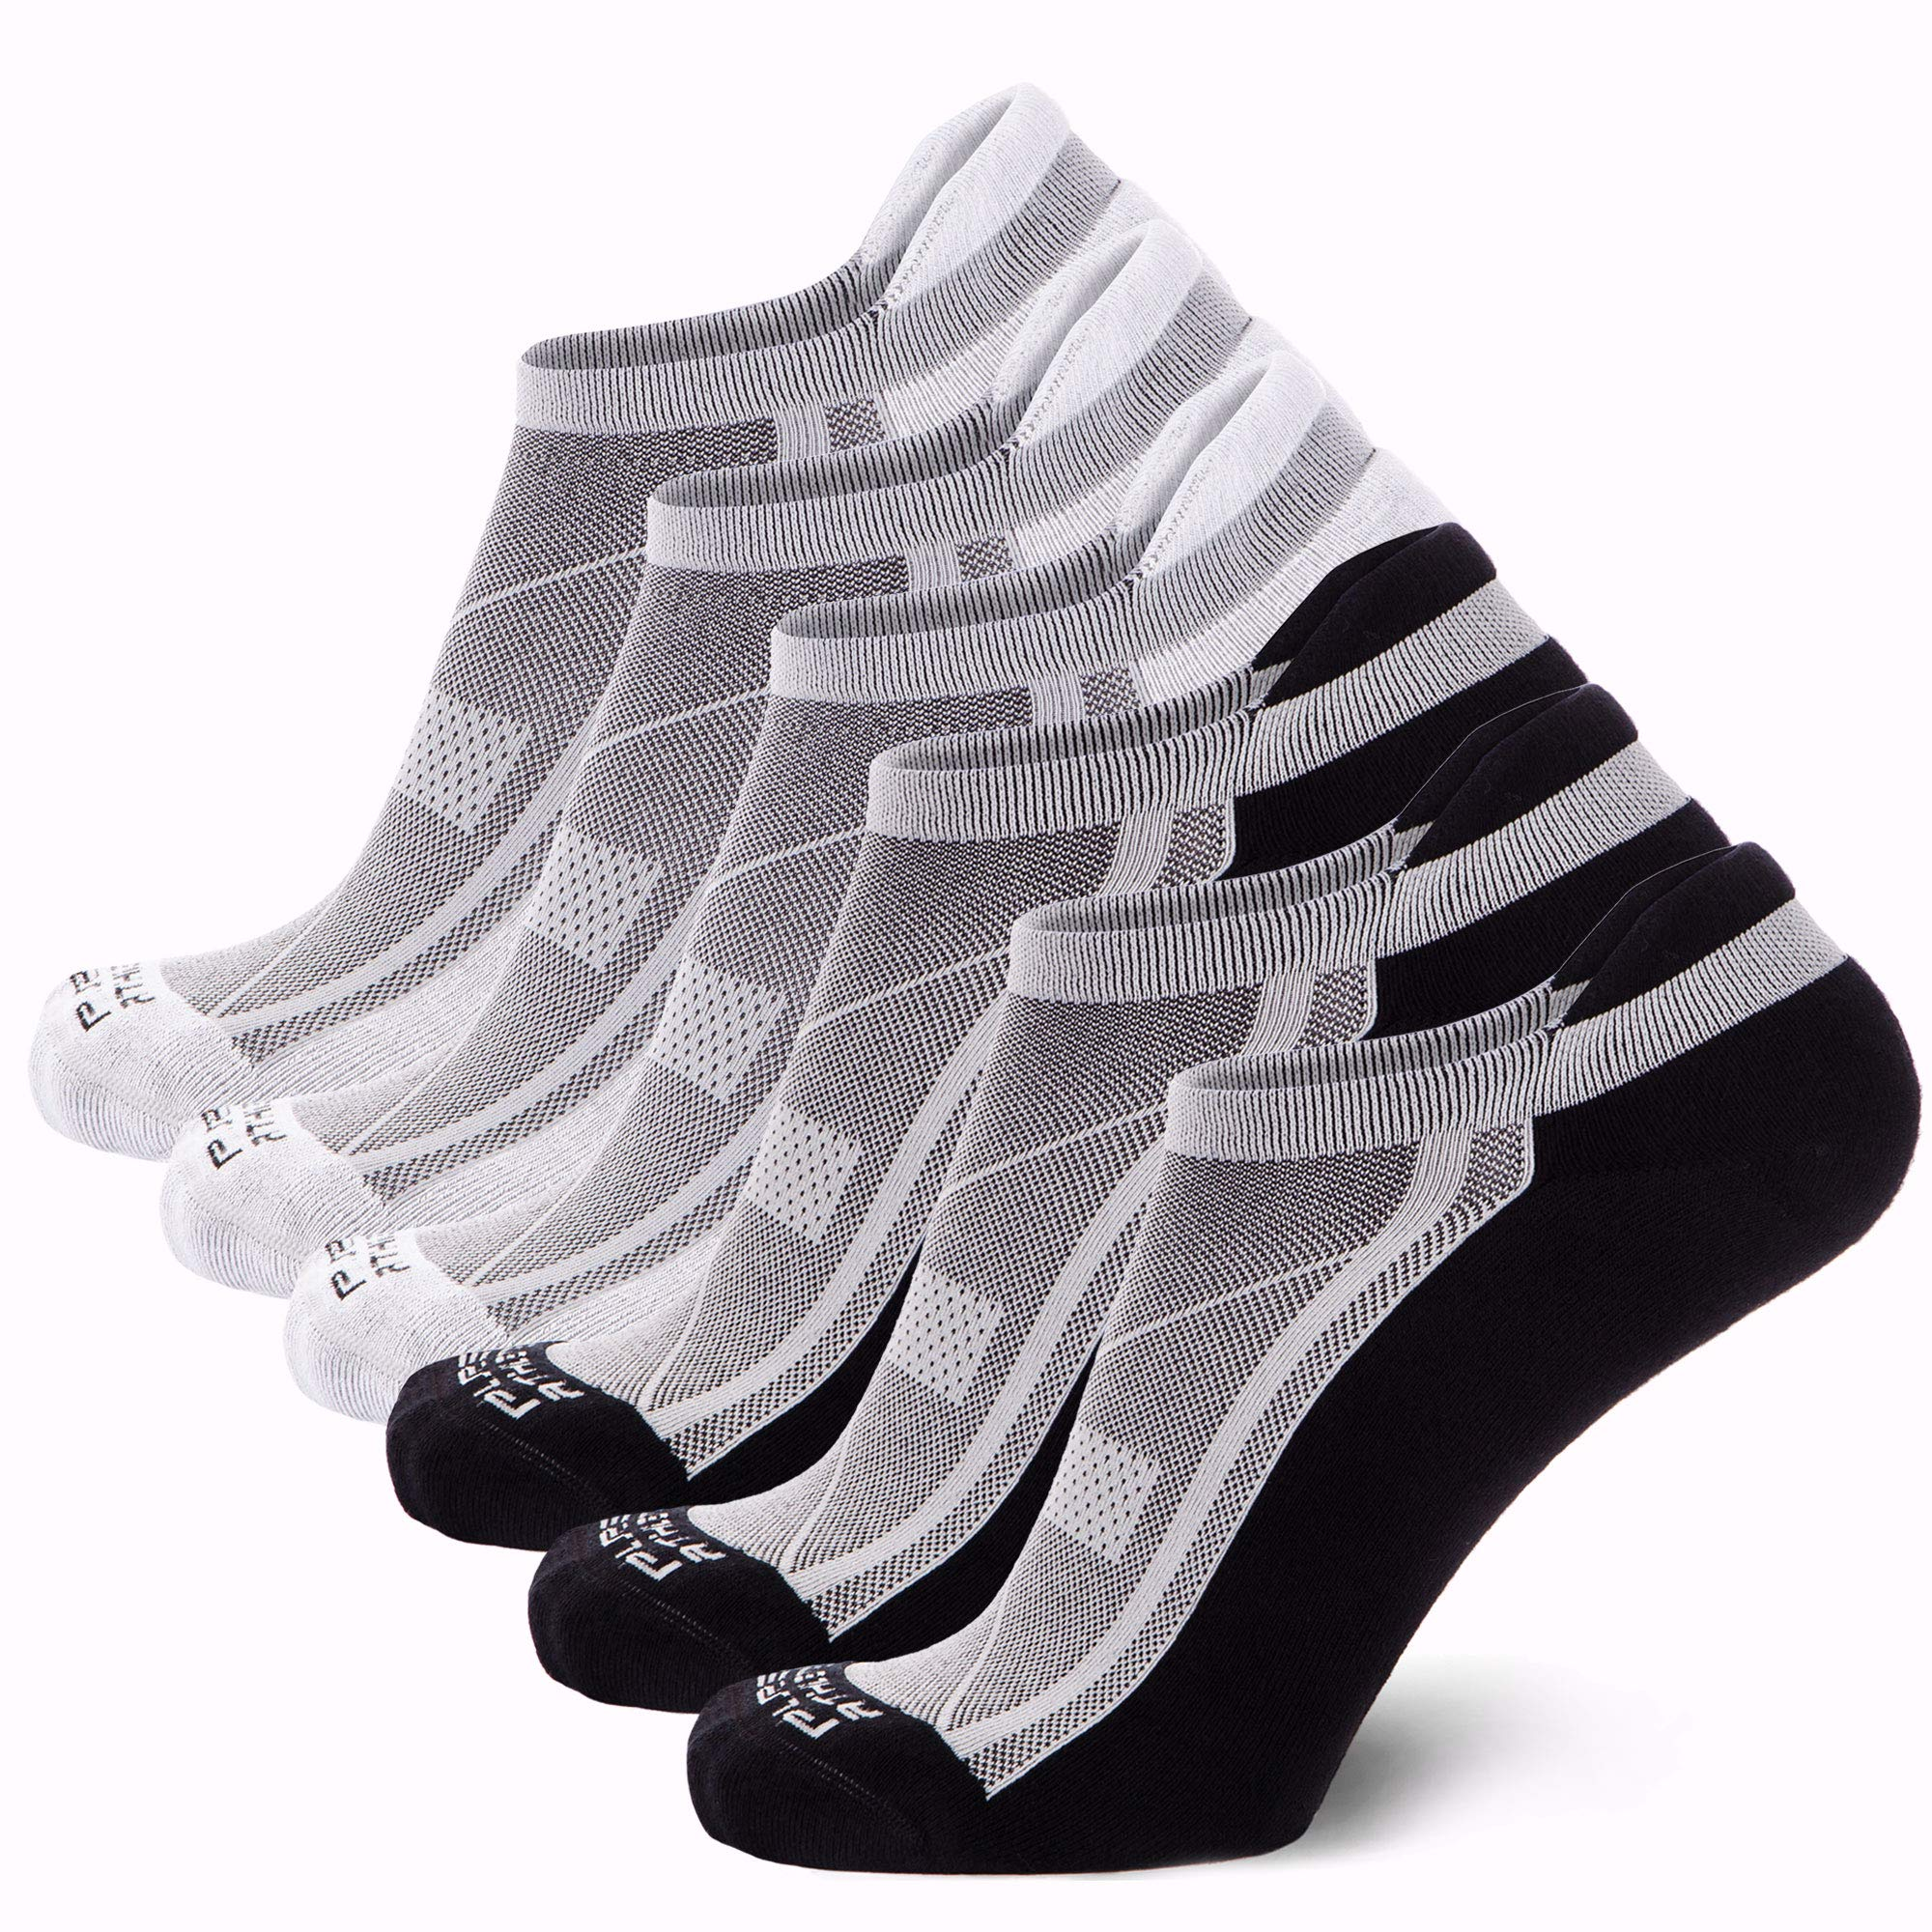 Anti-Blister Pure Athlete Bamboo Low Cut Running Socks for Men and Women Cushioned Comfortable